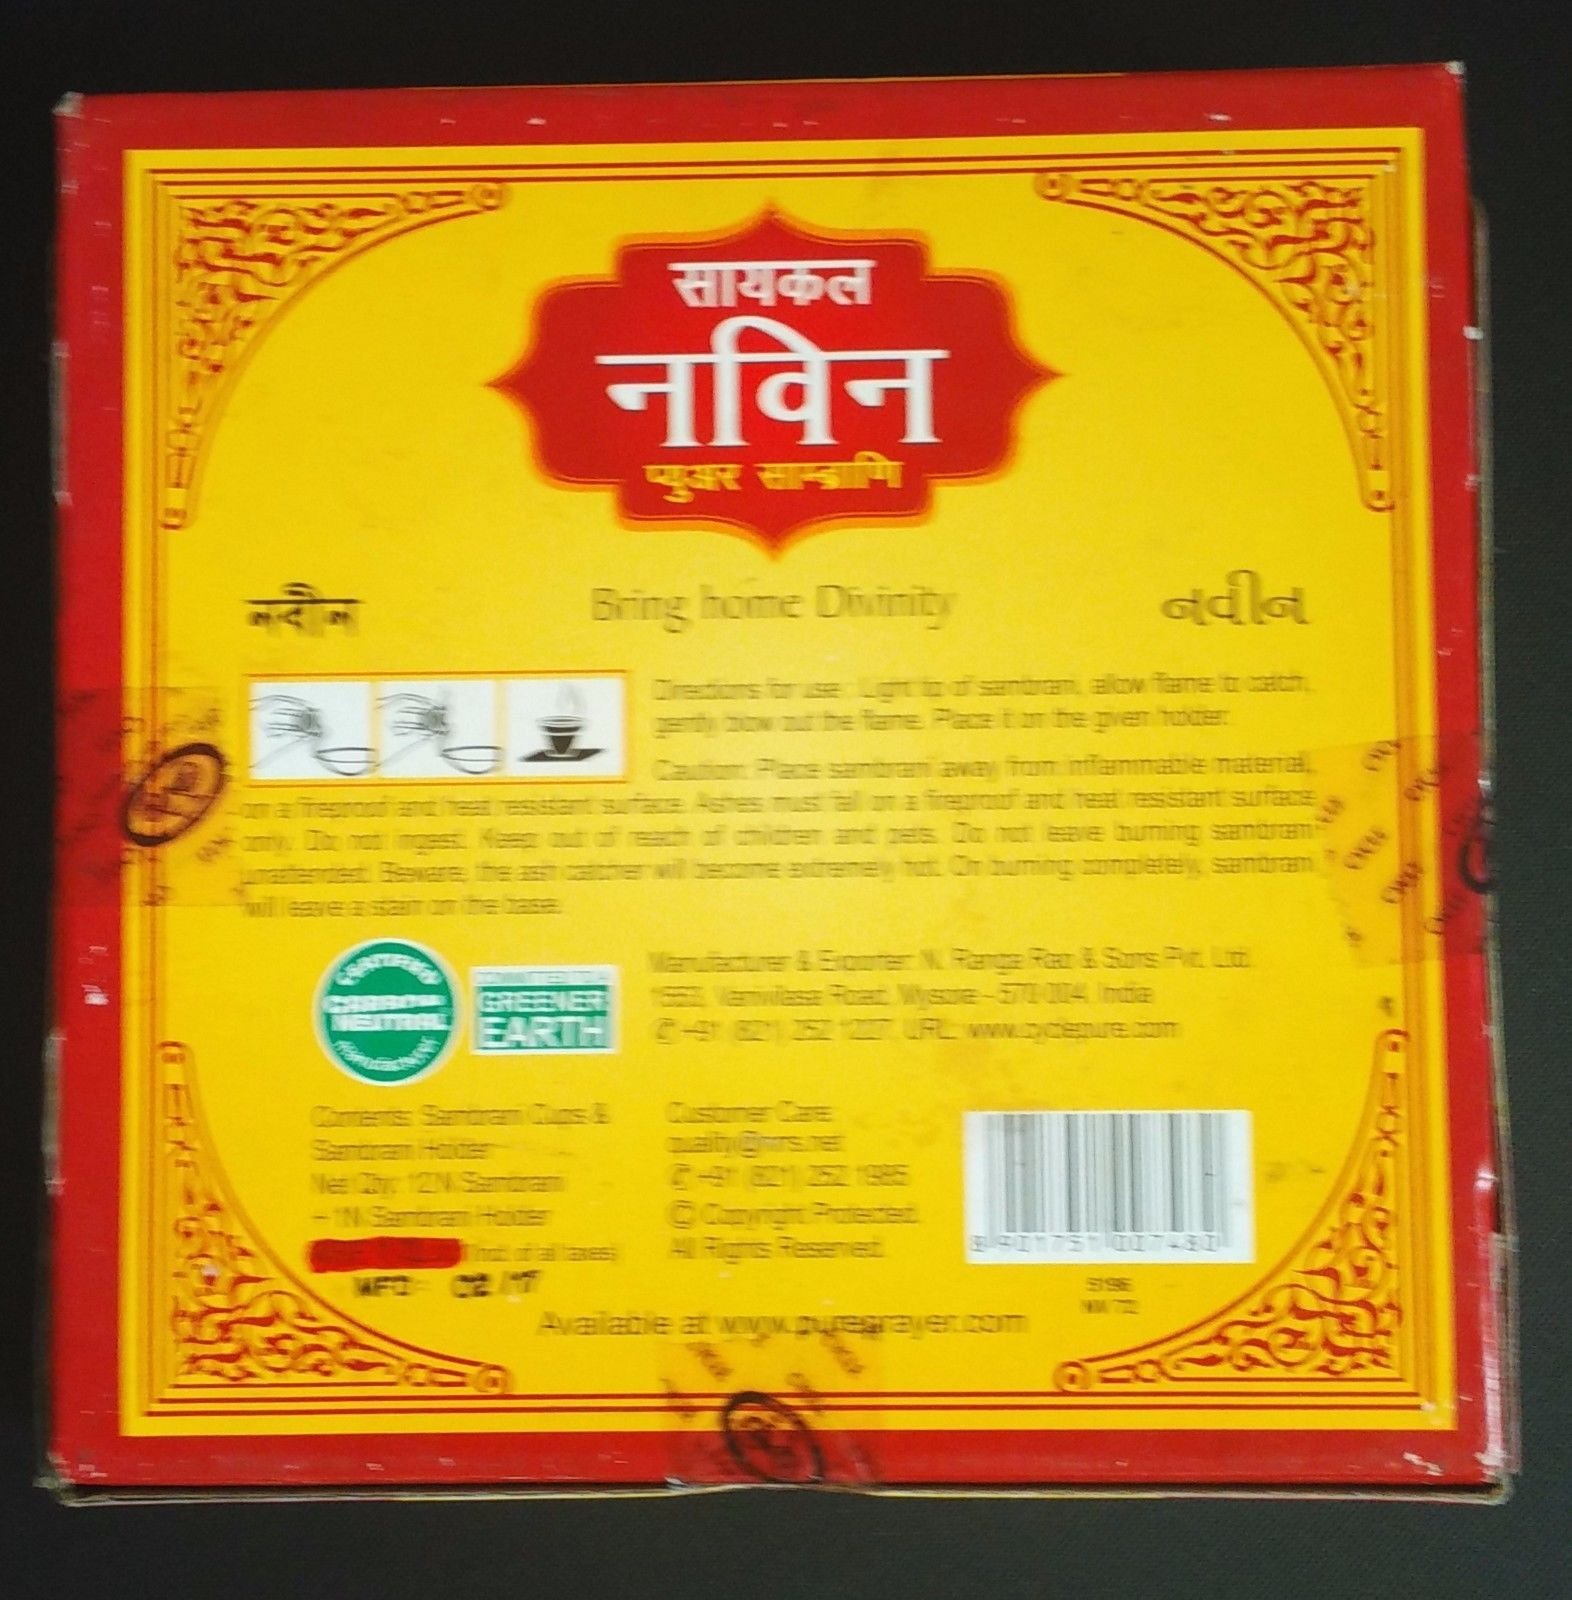 Cycle Navin sambrani dhoopbatti dhoop sticks and 50 similar